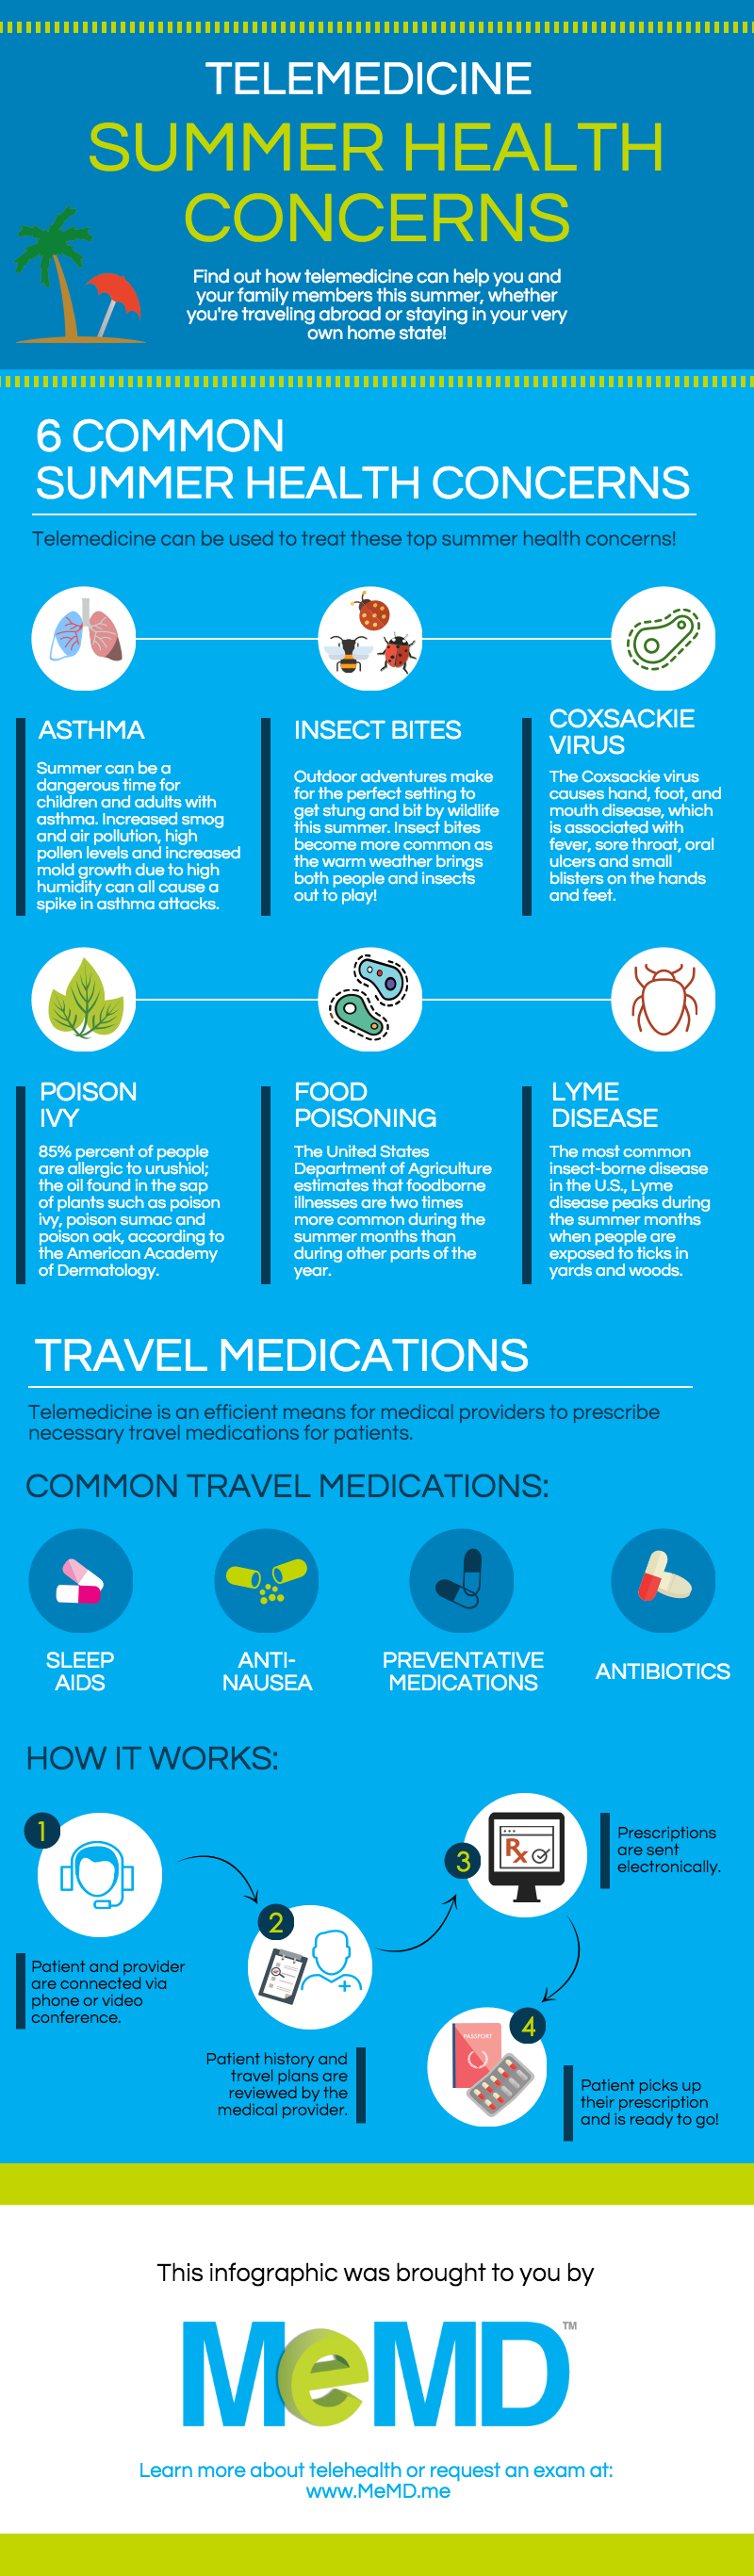 blog-infographic-summer-health-concerns-telemedicine